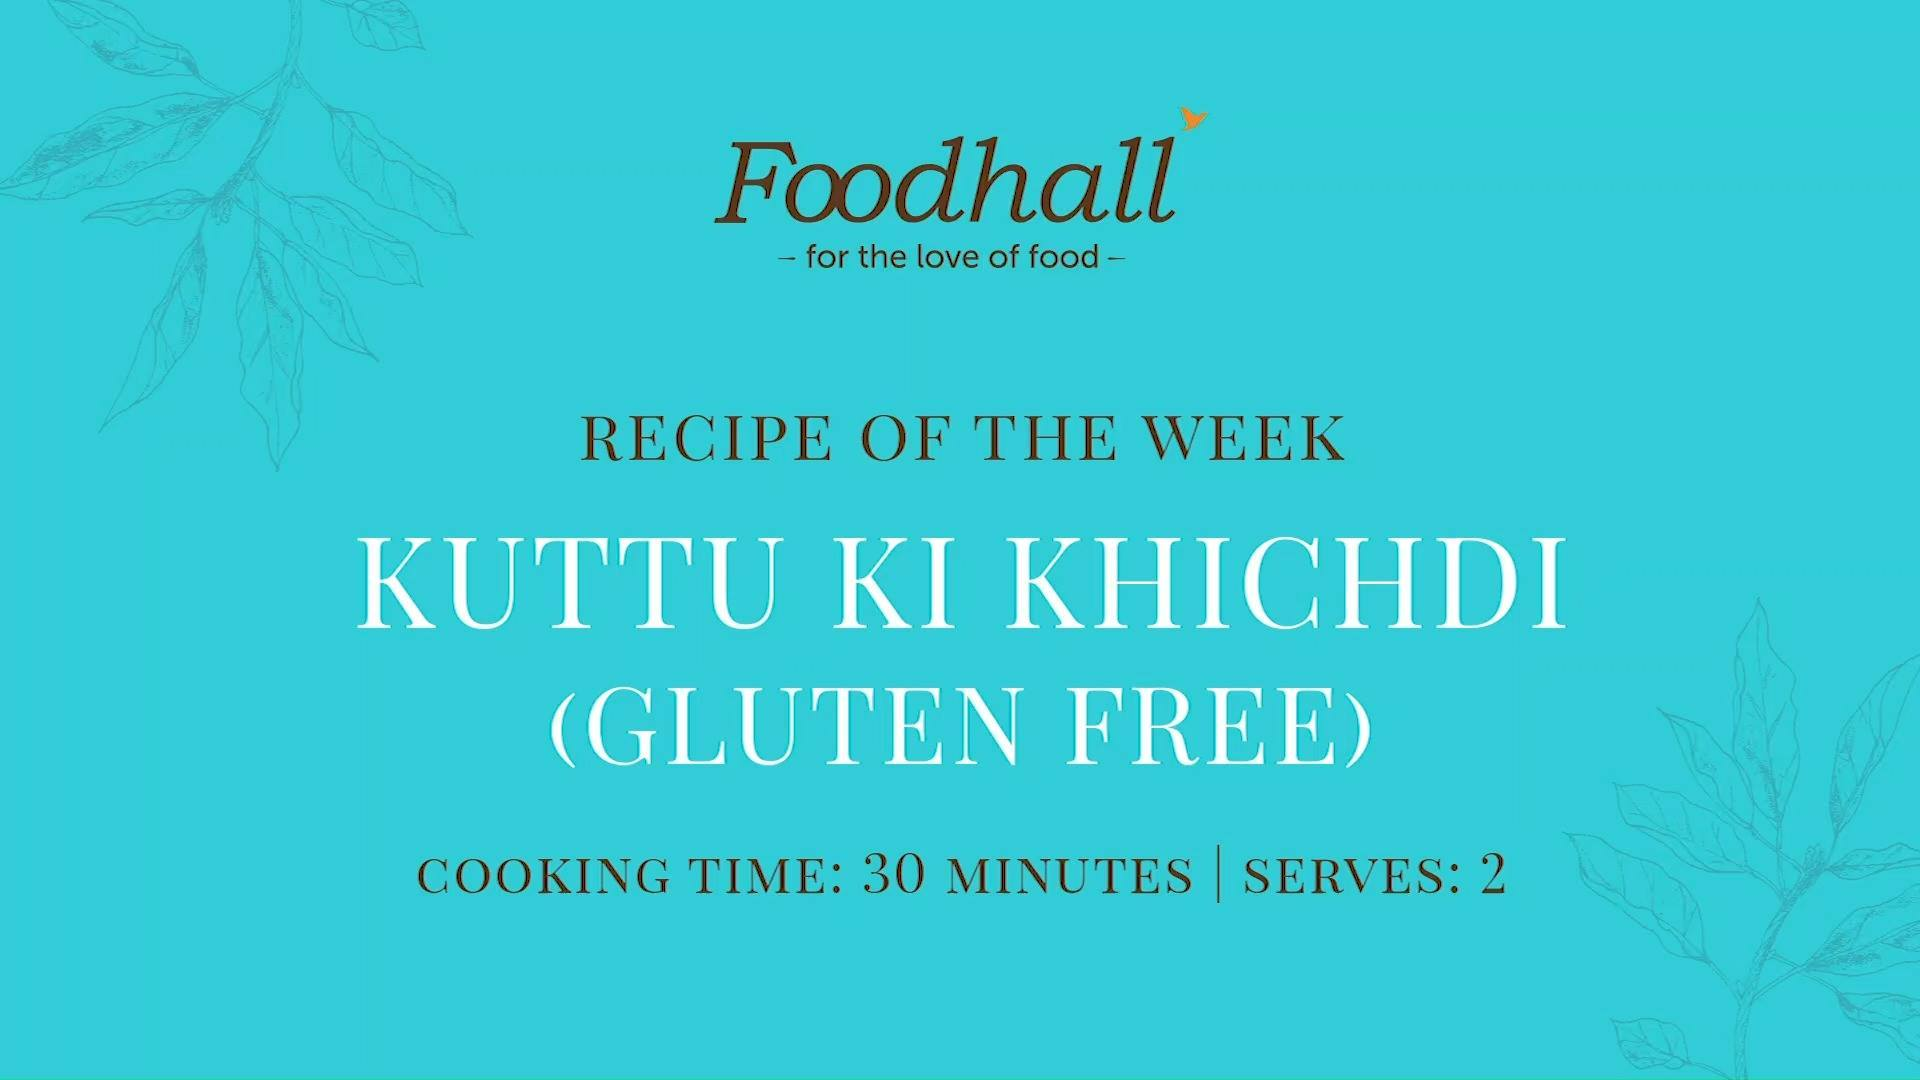 #RecipeoftheWeek: Kuttu Ki Khichdi!  Our recipe this week is a #Navtrati special featuring buckwheat khichdi! Rich in protein and fibre, the superfood #buckwheat is a great gluten-free option for those fasting during the navrati season. To balance the hearty warmth of the buckwheat, serve this dish with a cooling bowl of yogurt for a deliciously wholesome meal!  #ForTheLoveofFood #FoodhallIndia #NavratriFasting #Buckwheat #KuttukiKhicdhi #RecipeShare #Superfoods #GlutenFree #HealthyLiving